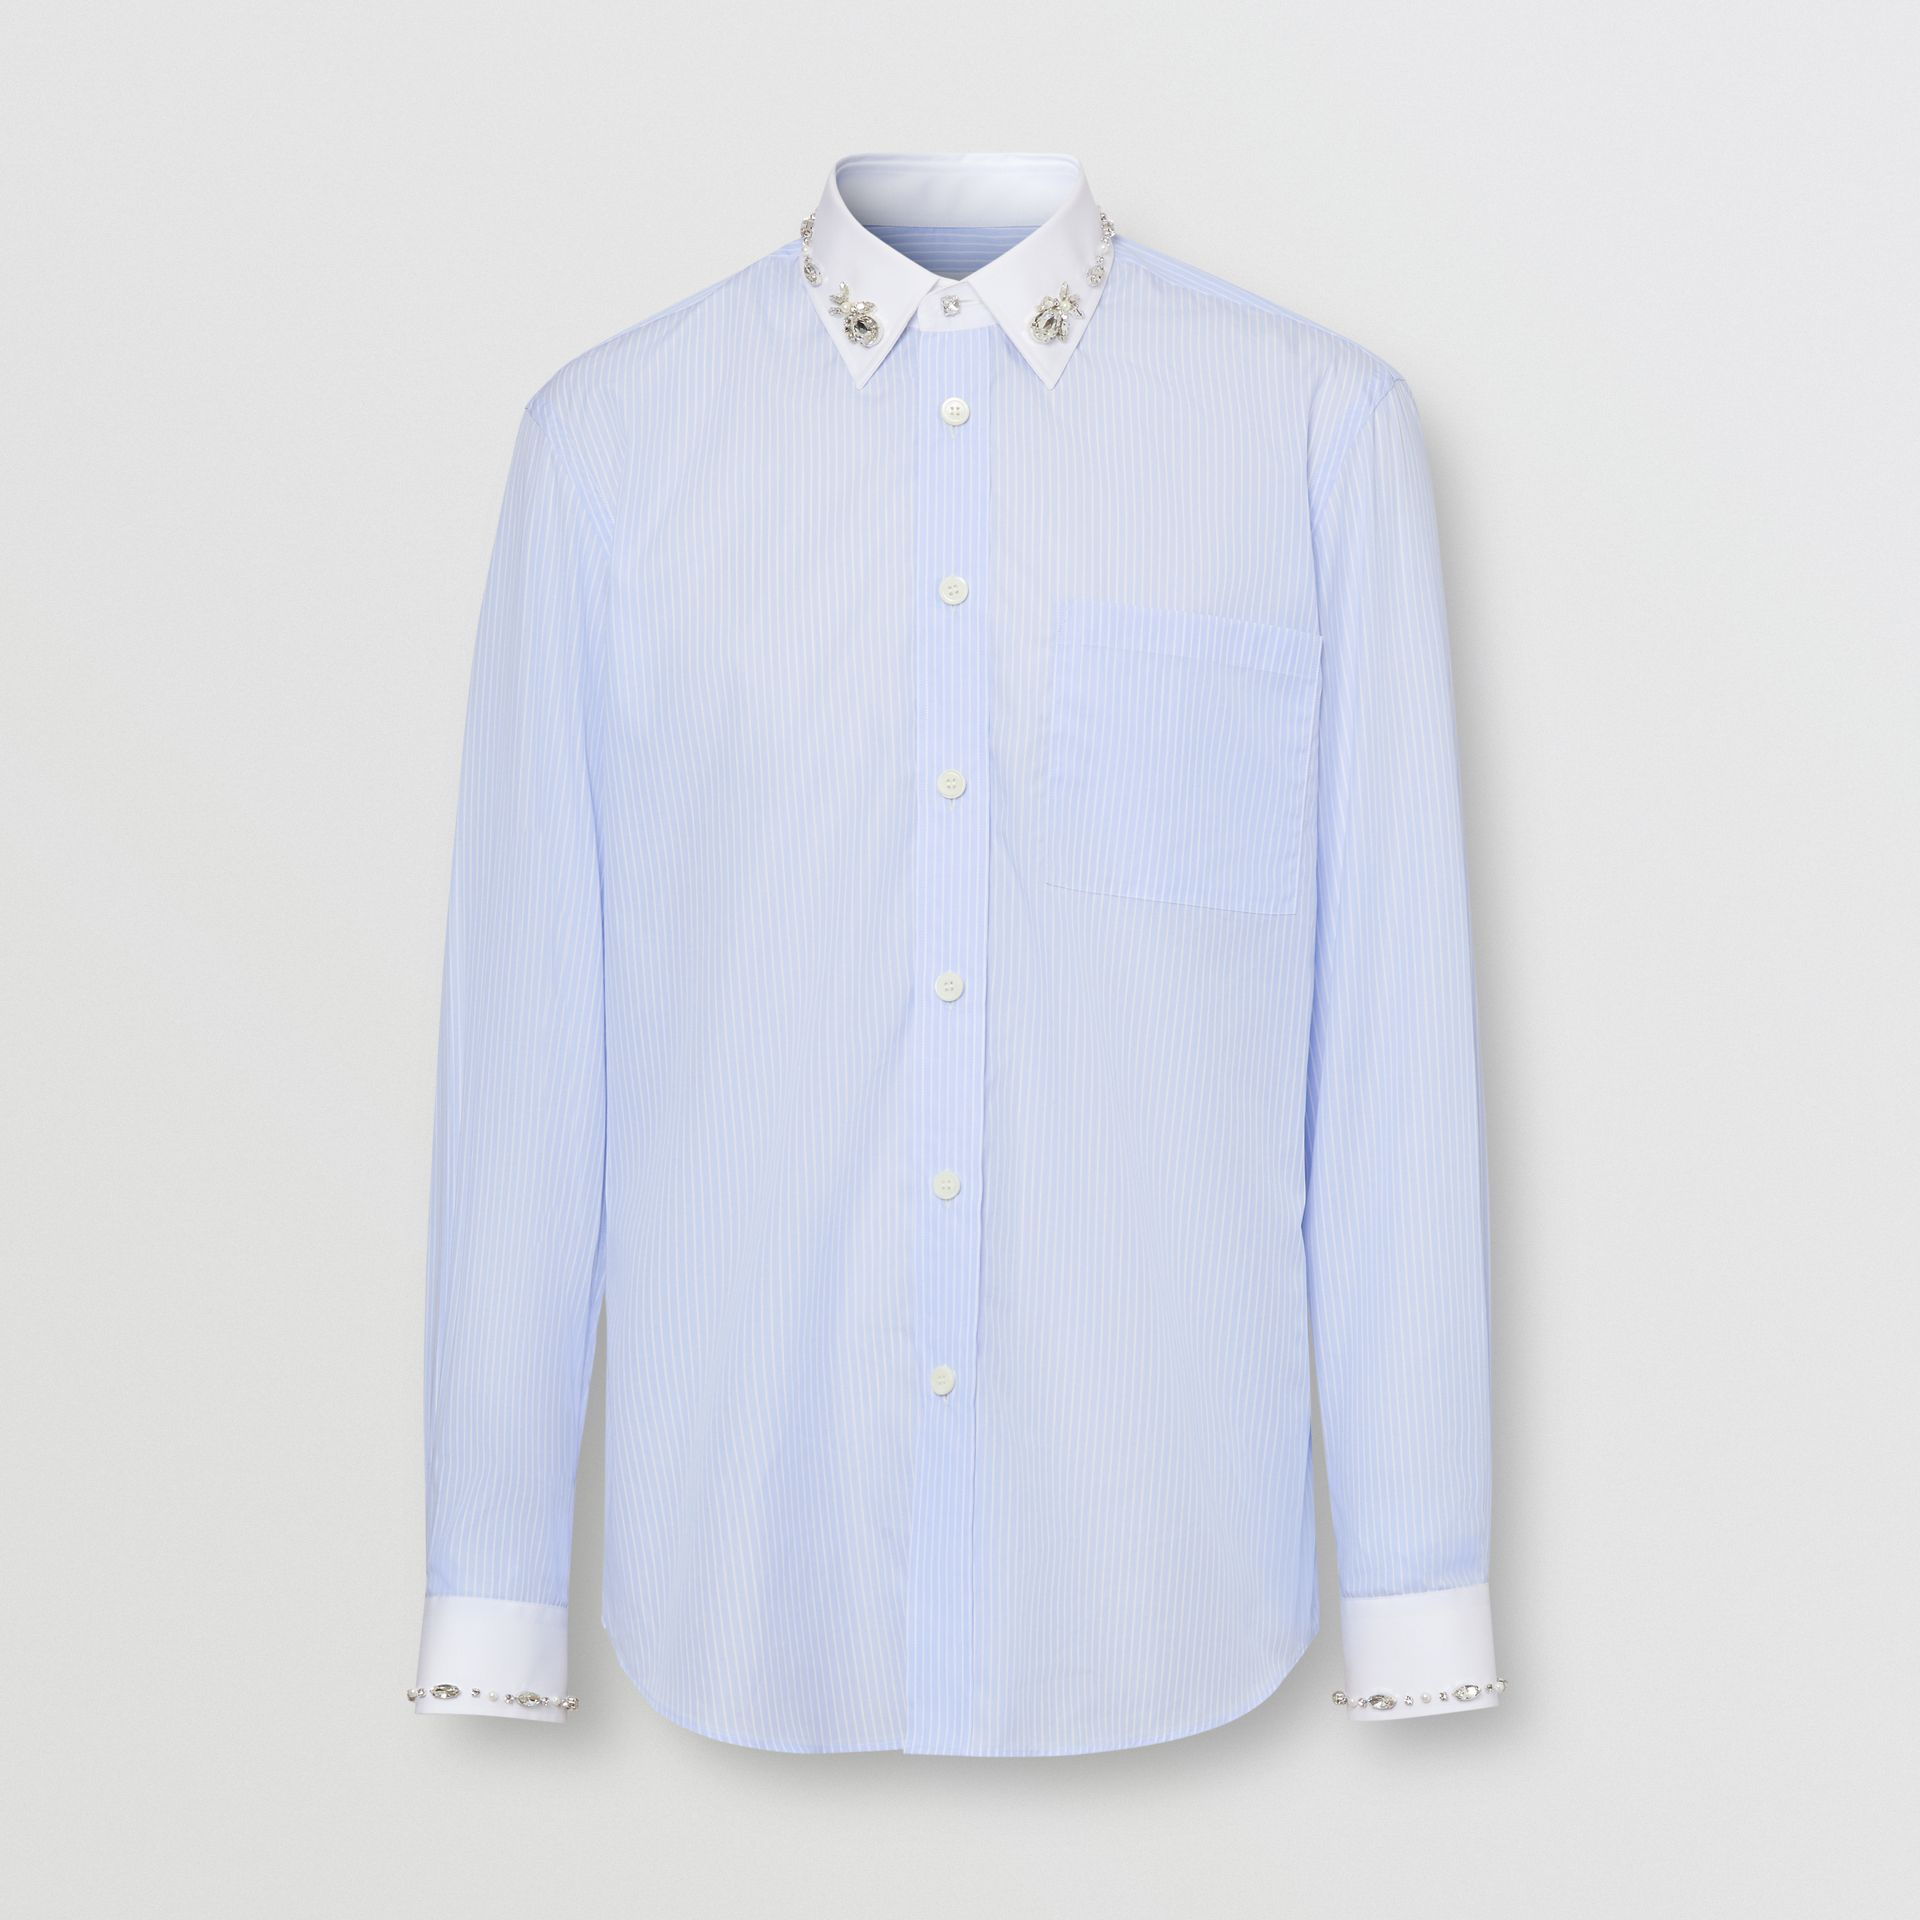 Classic Fit Embellished Pinstriped Cotton Shirt in Pale Blue - Men | Burberry - gallery image 3